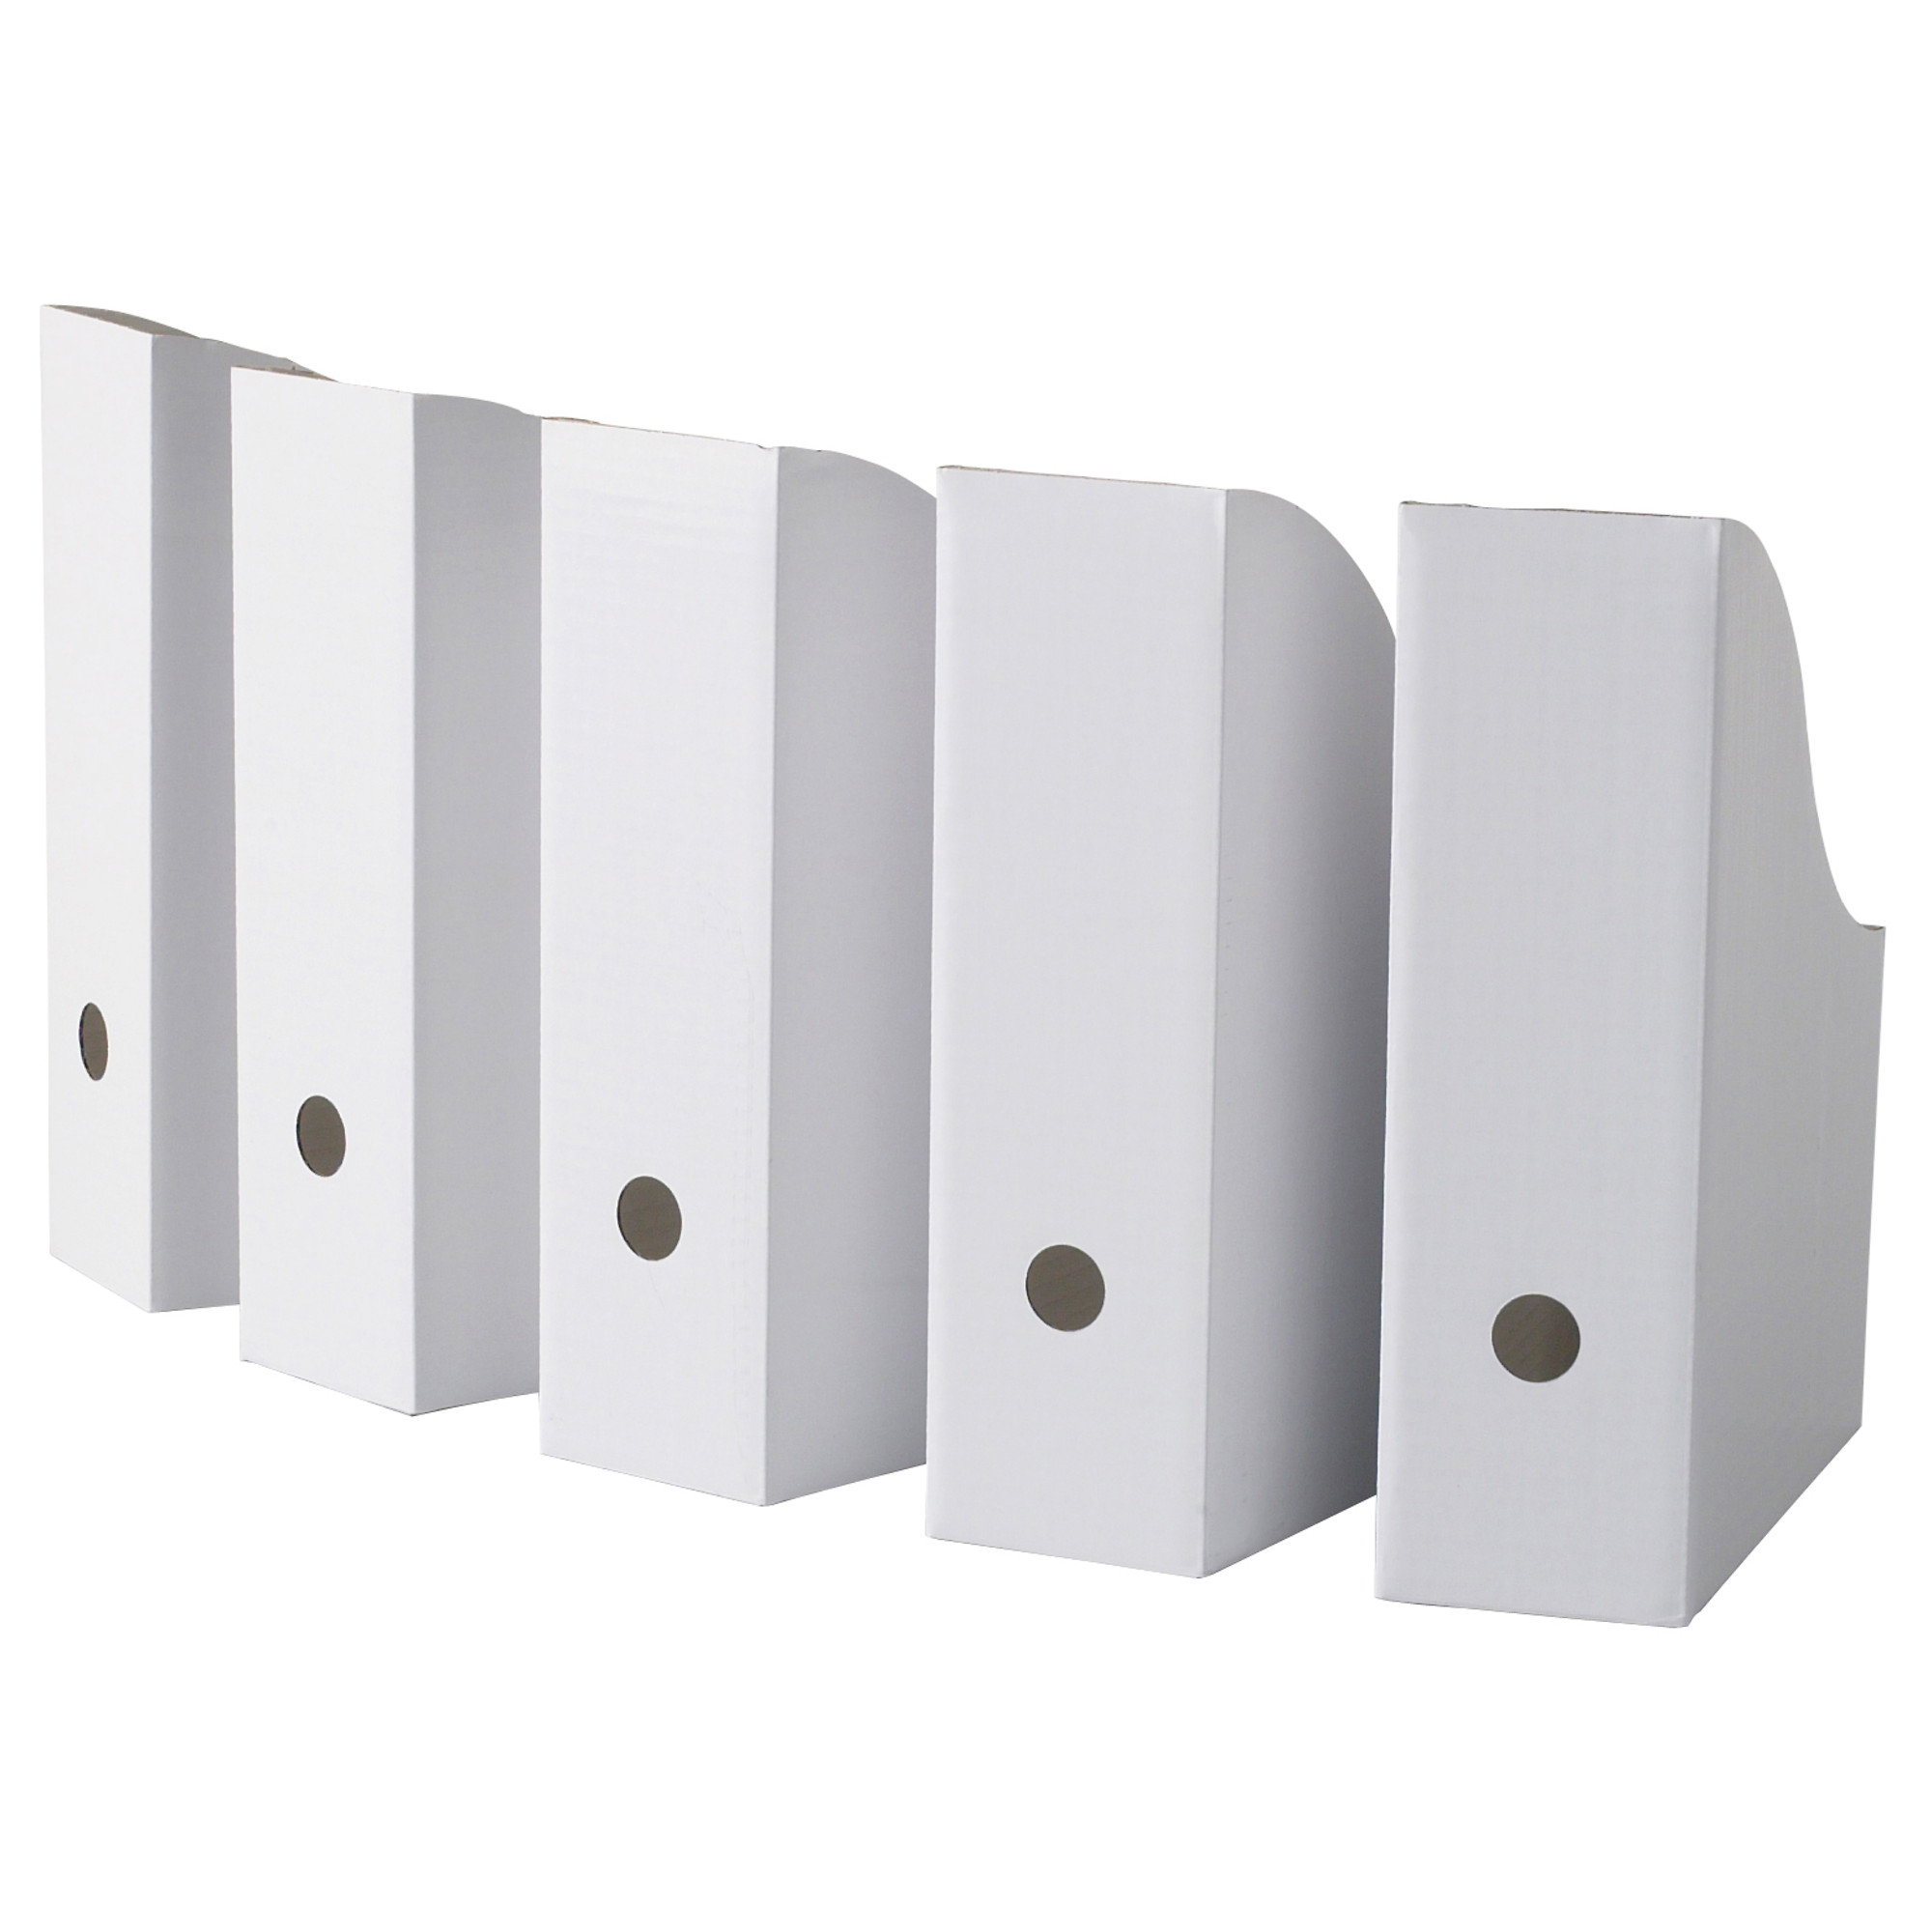 Ikea Box Holder Magazine Holder Ikea First Assistance To Keep Your